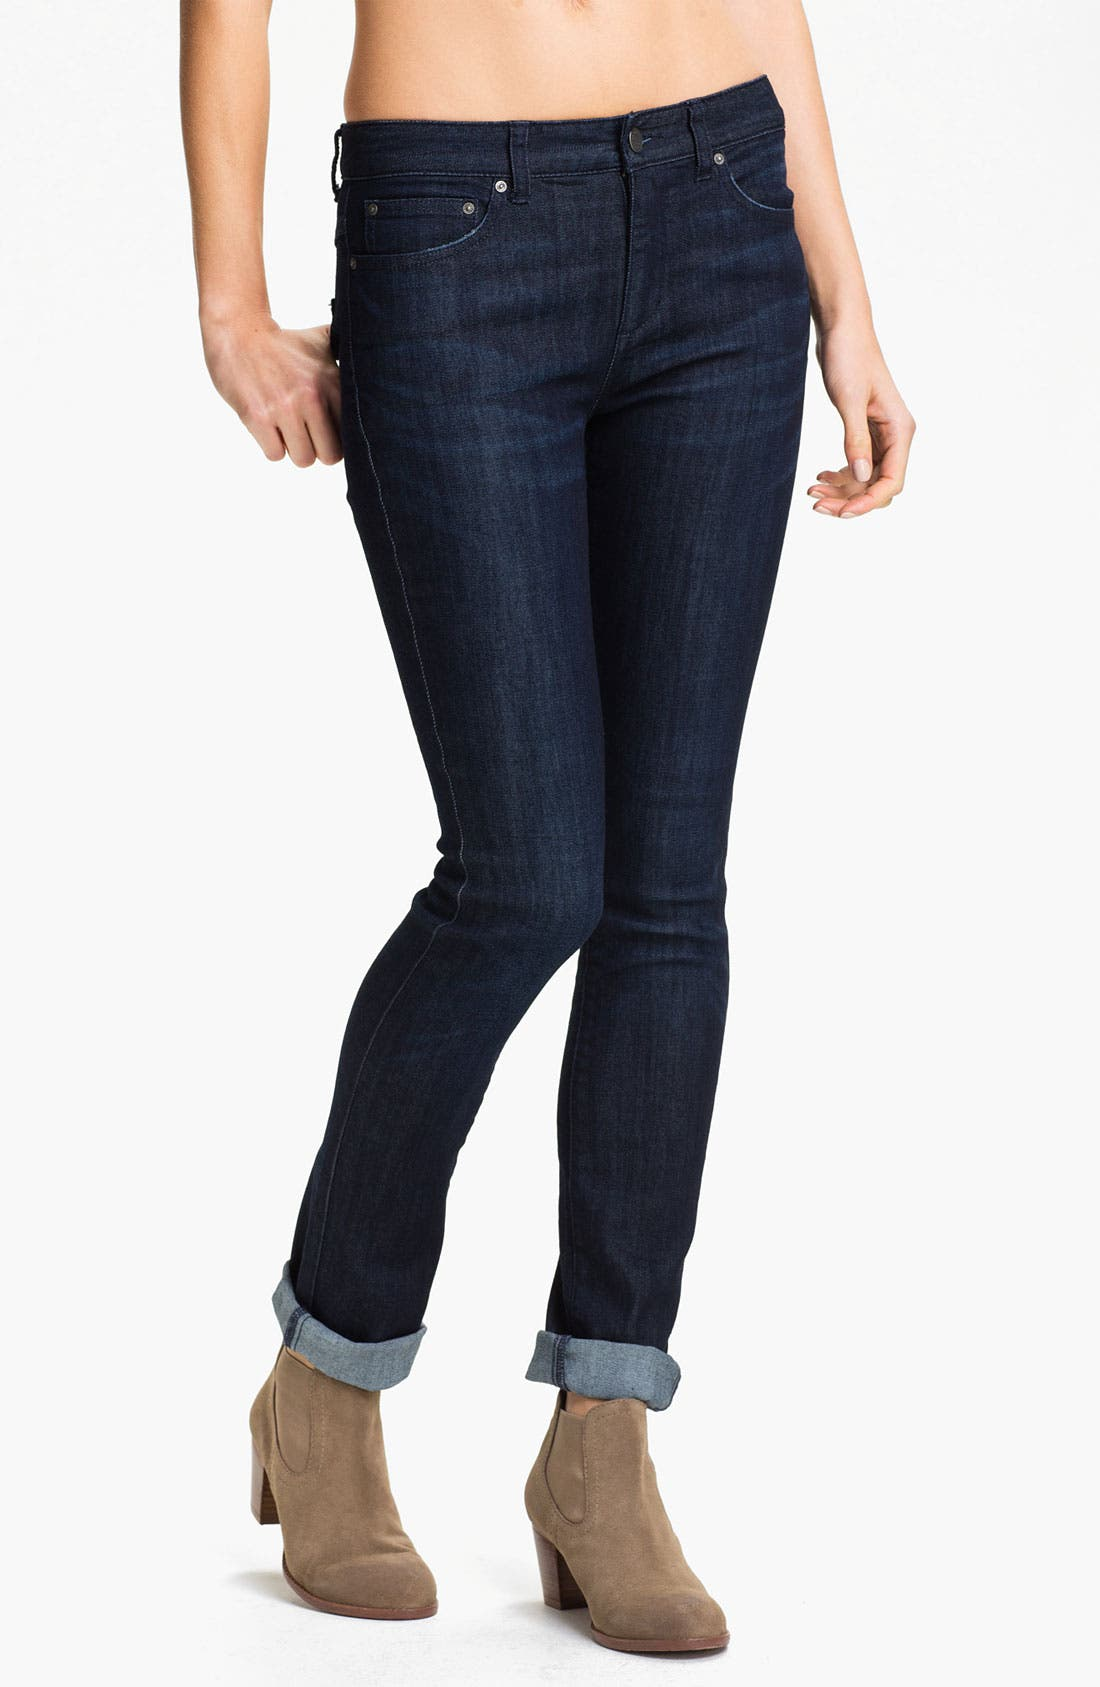 Alternate Image 1 Selected - Free People Stretch Denim Skinny Jeans (Dark Eagle Blue Wash)